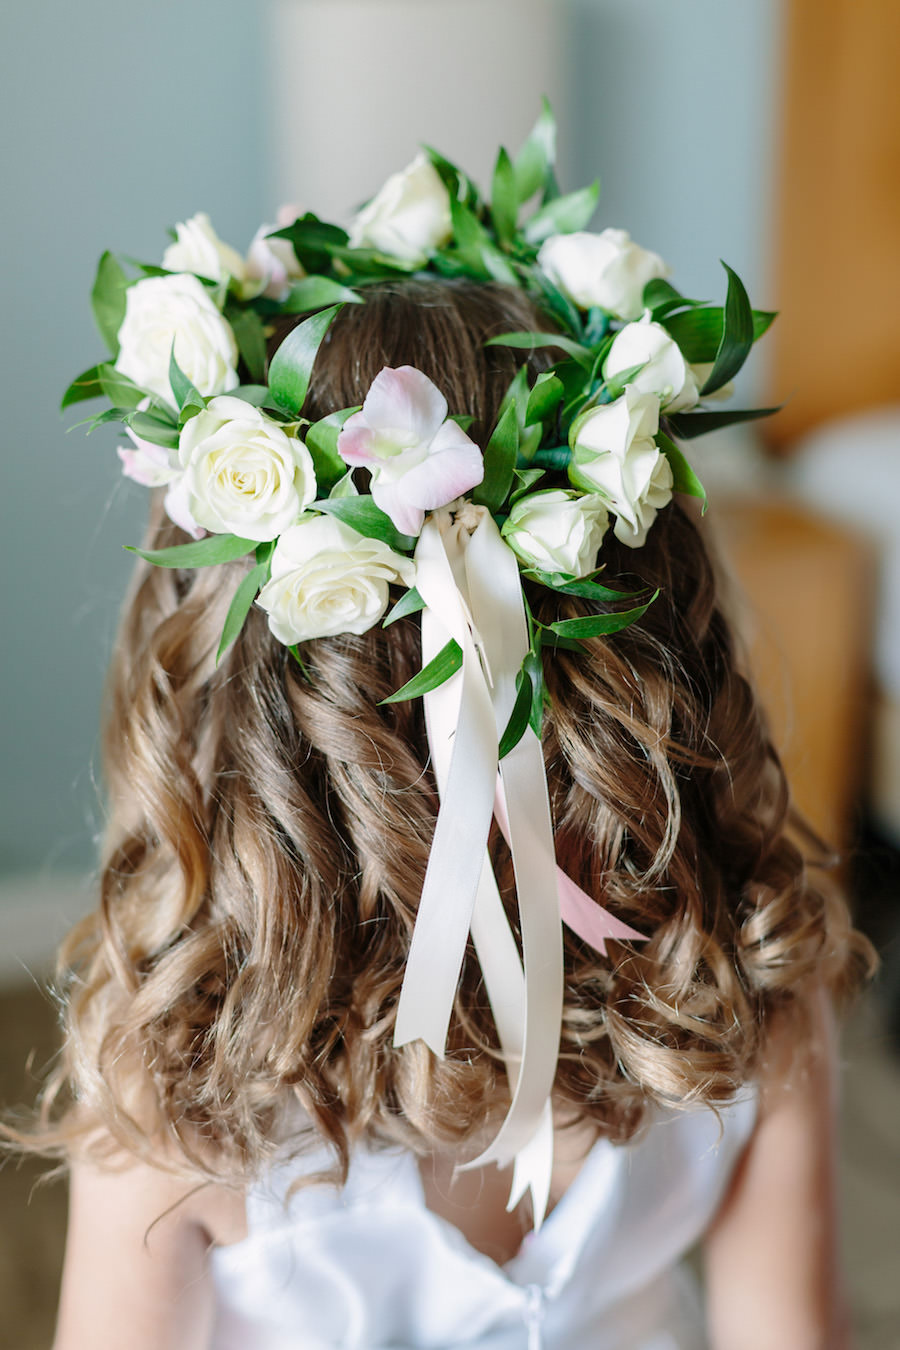 Ivory Rose Floral Crown for Flower Girl at Destination Clearwater Beach Florida Wedding